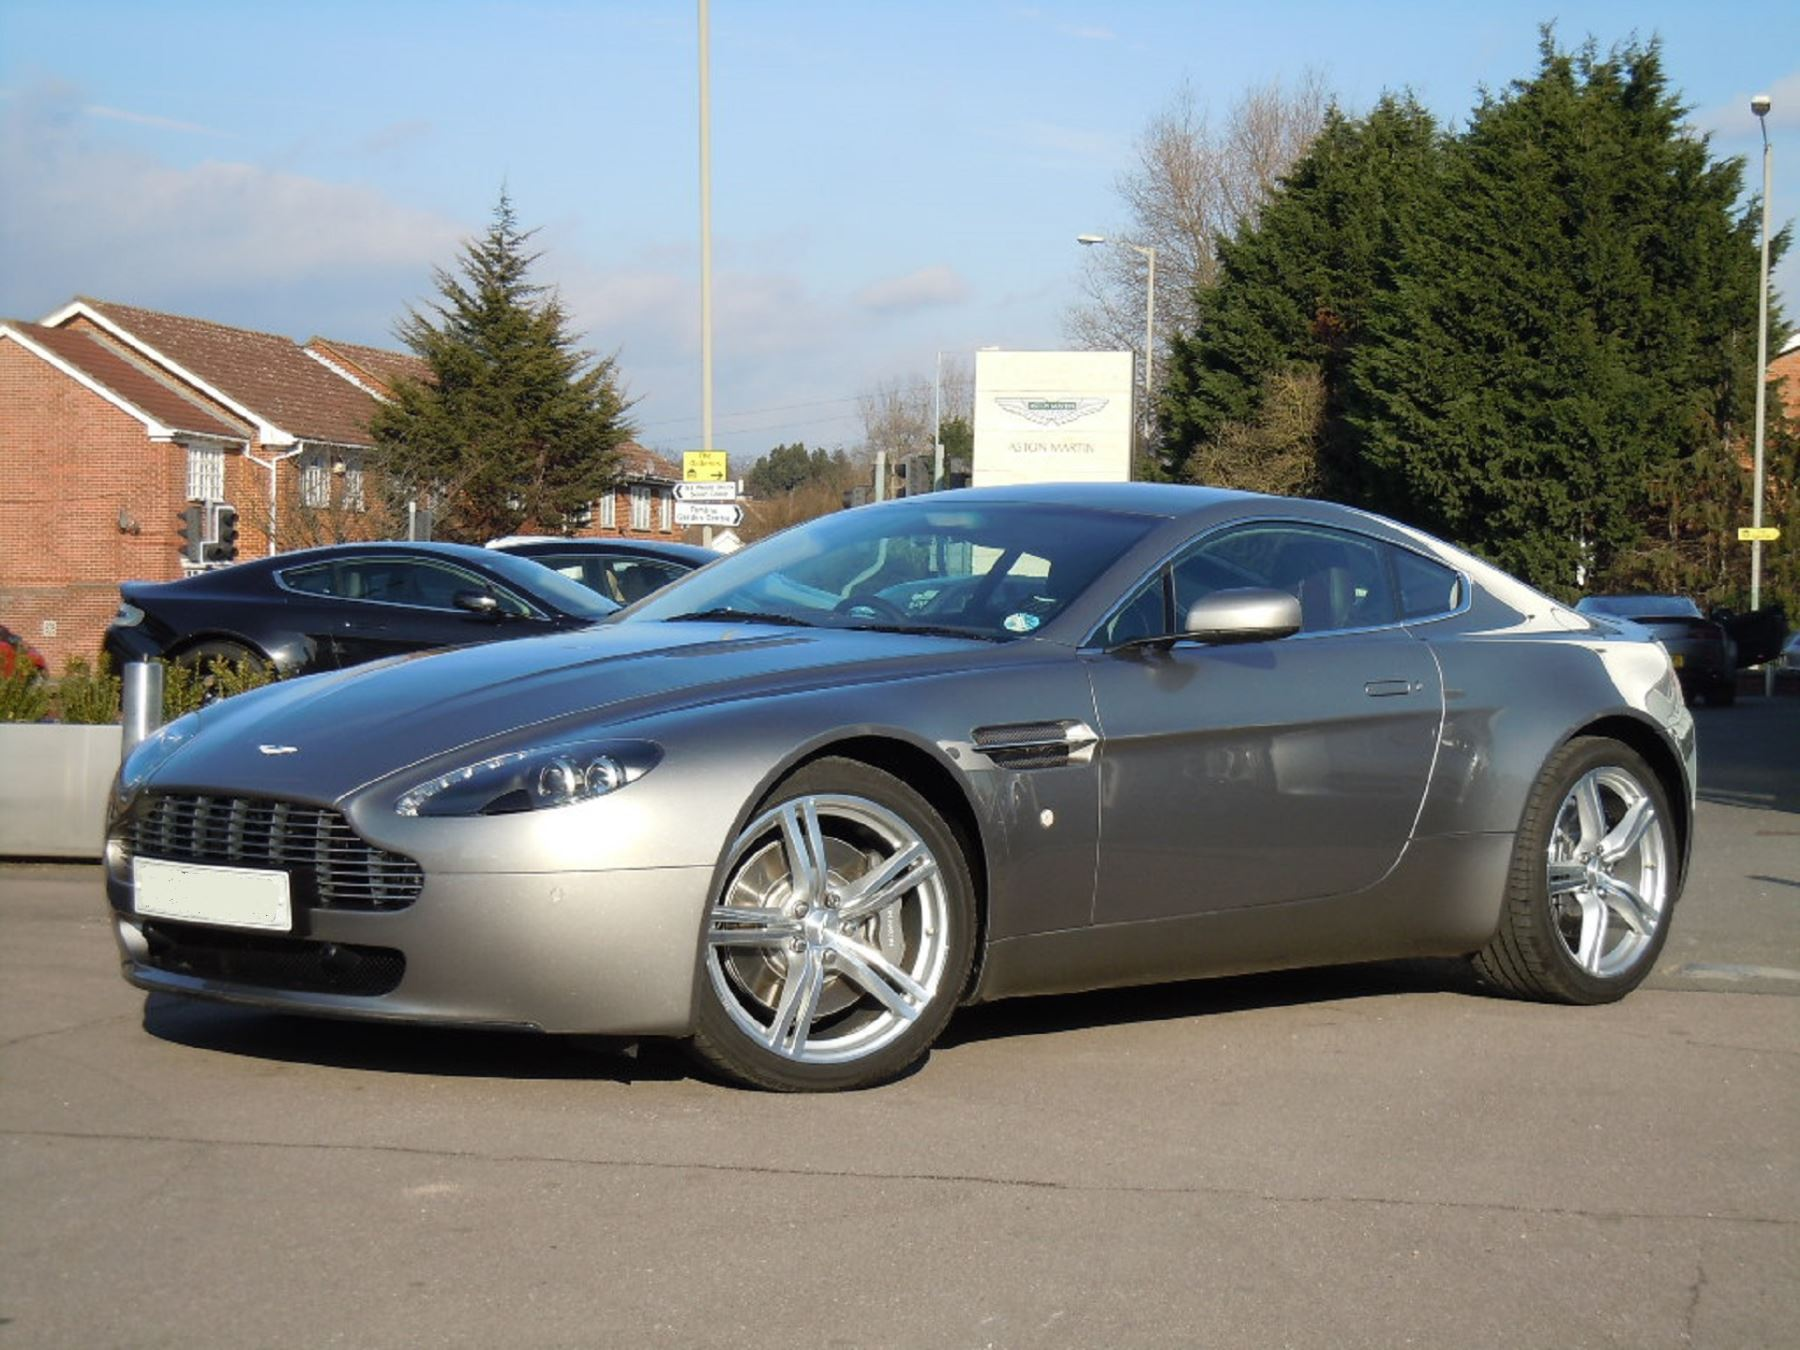 Aston Martin V8 Vantage Coupe 2dr Sportshift 4.3 Automatic Coupe (2009)